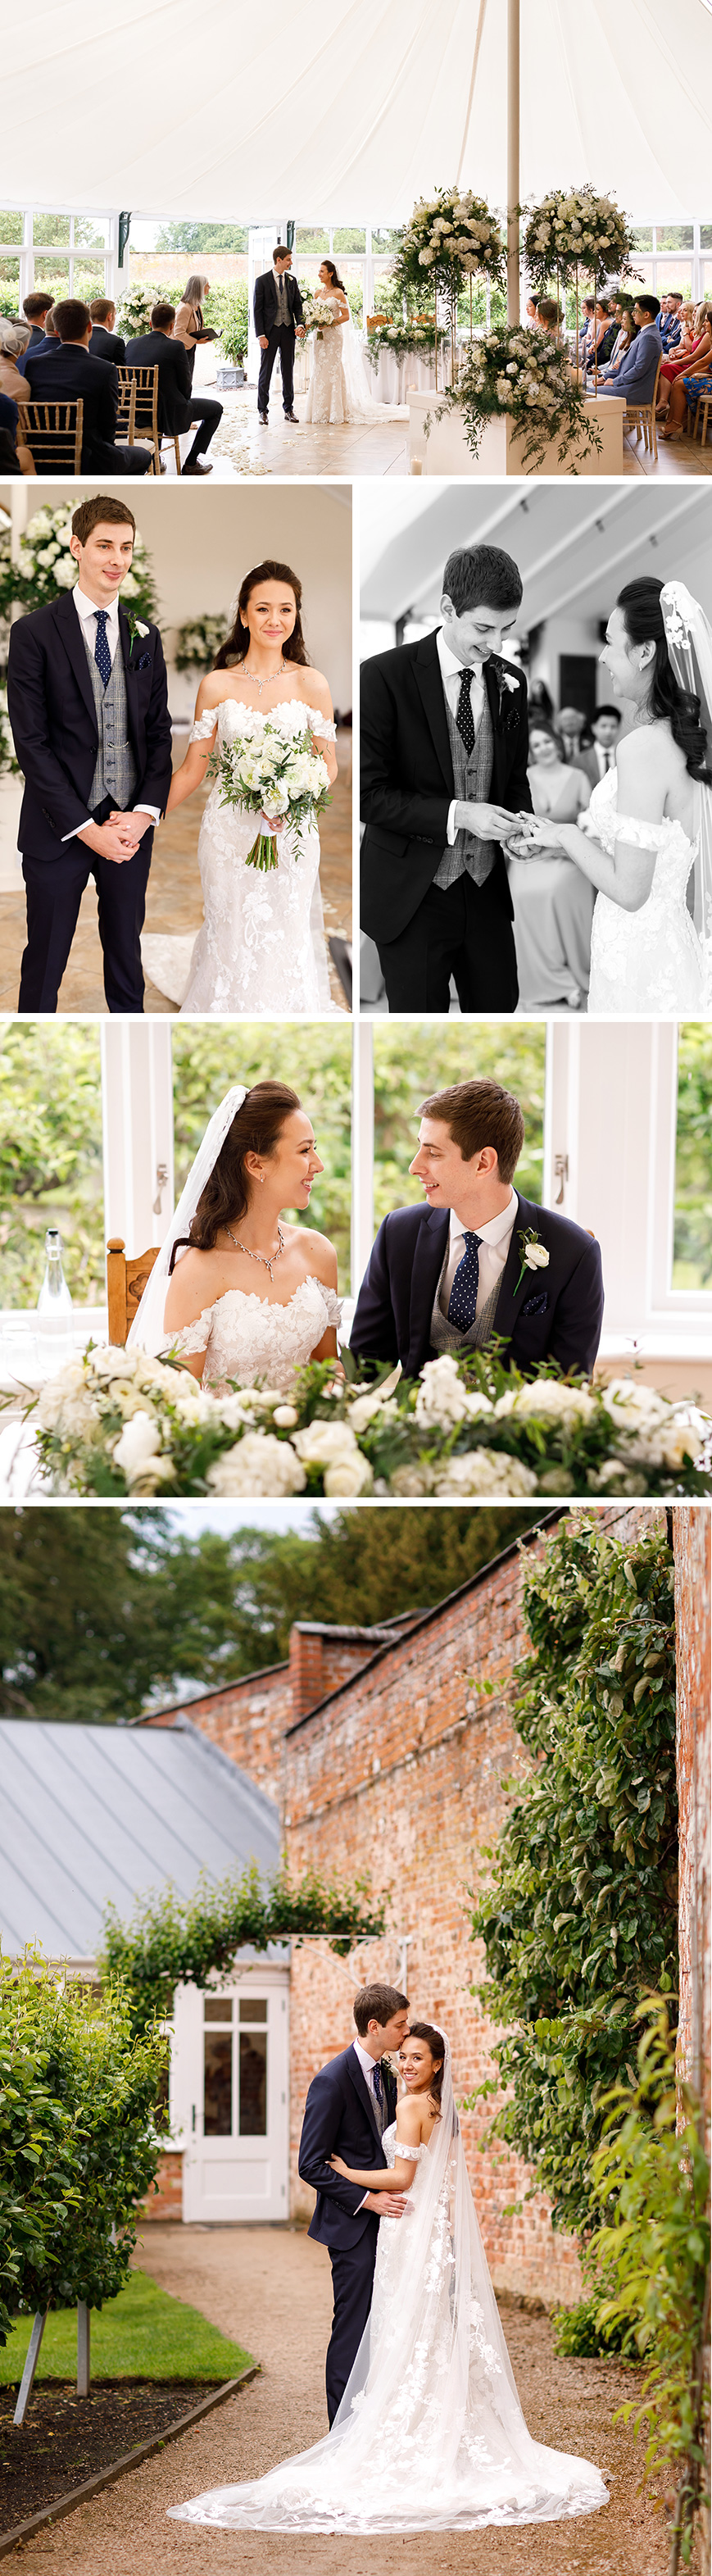 Real Wedding - Amy and James' Golden Summer Wedding At Combermere Abbey | CHWV